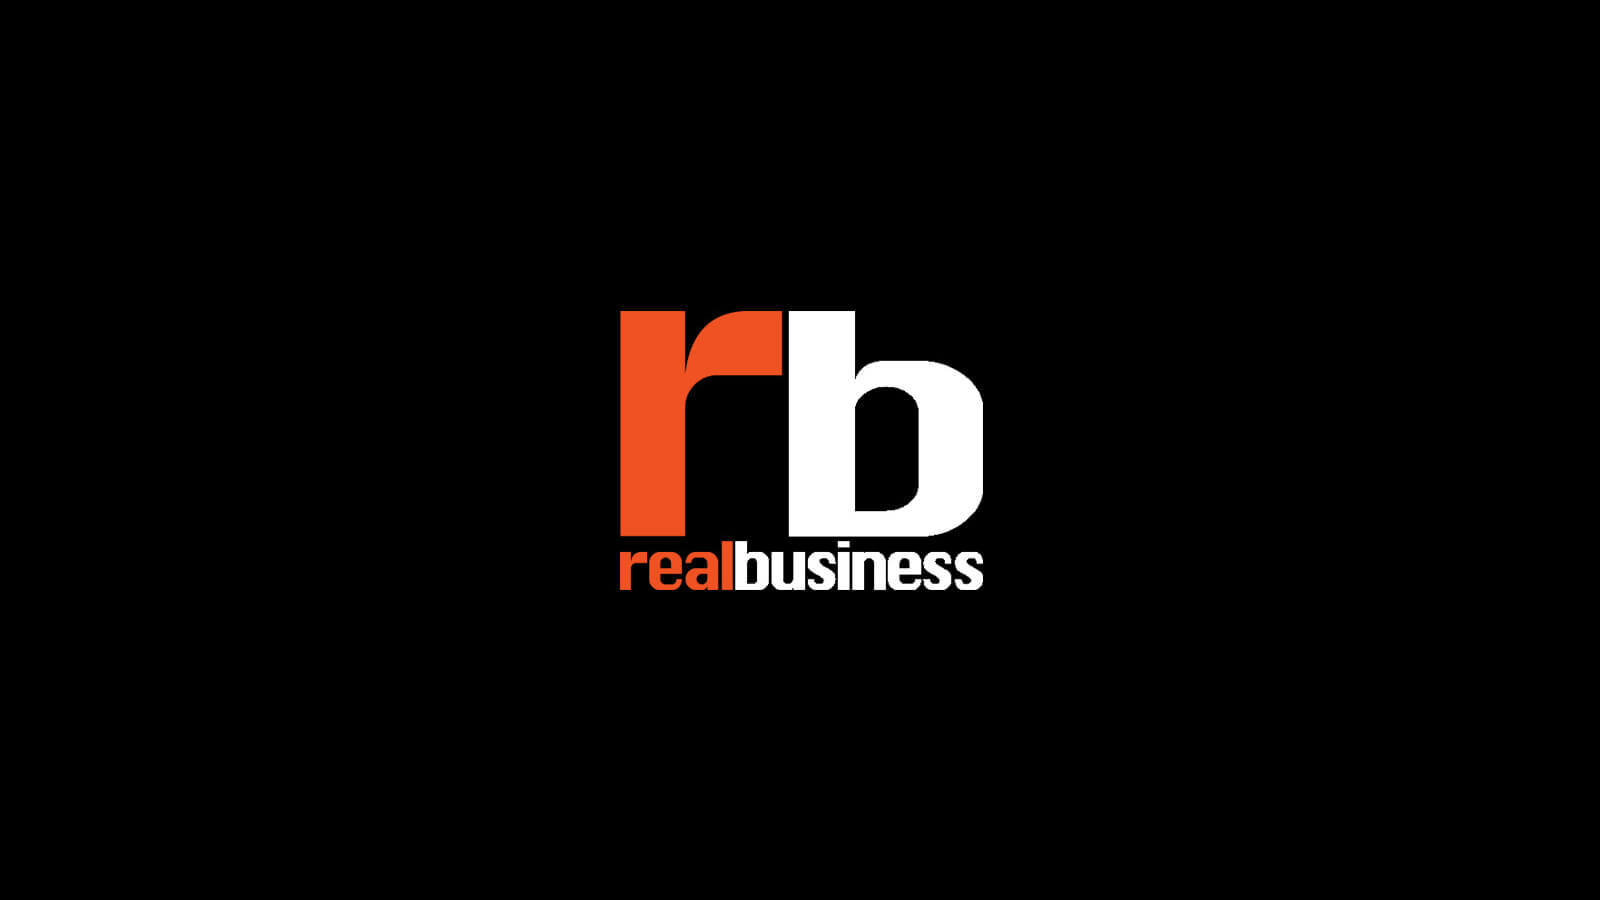 Real Business logo on a black background